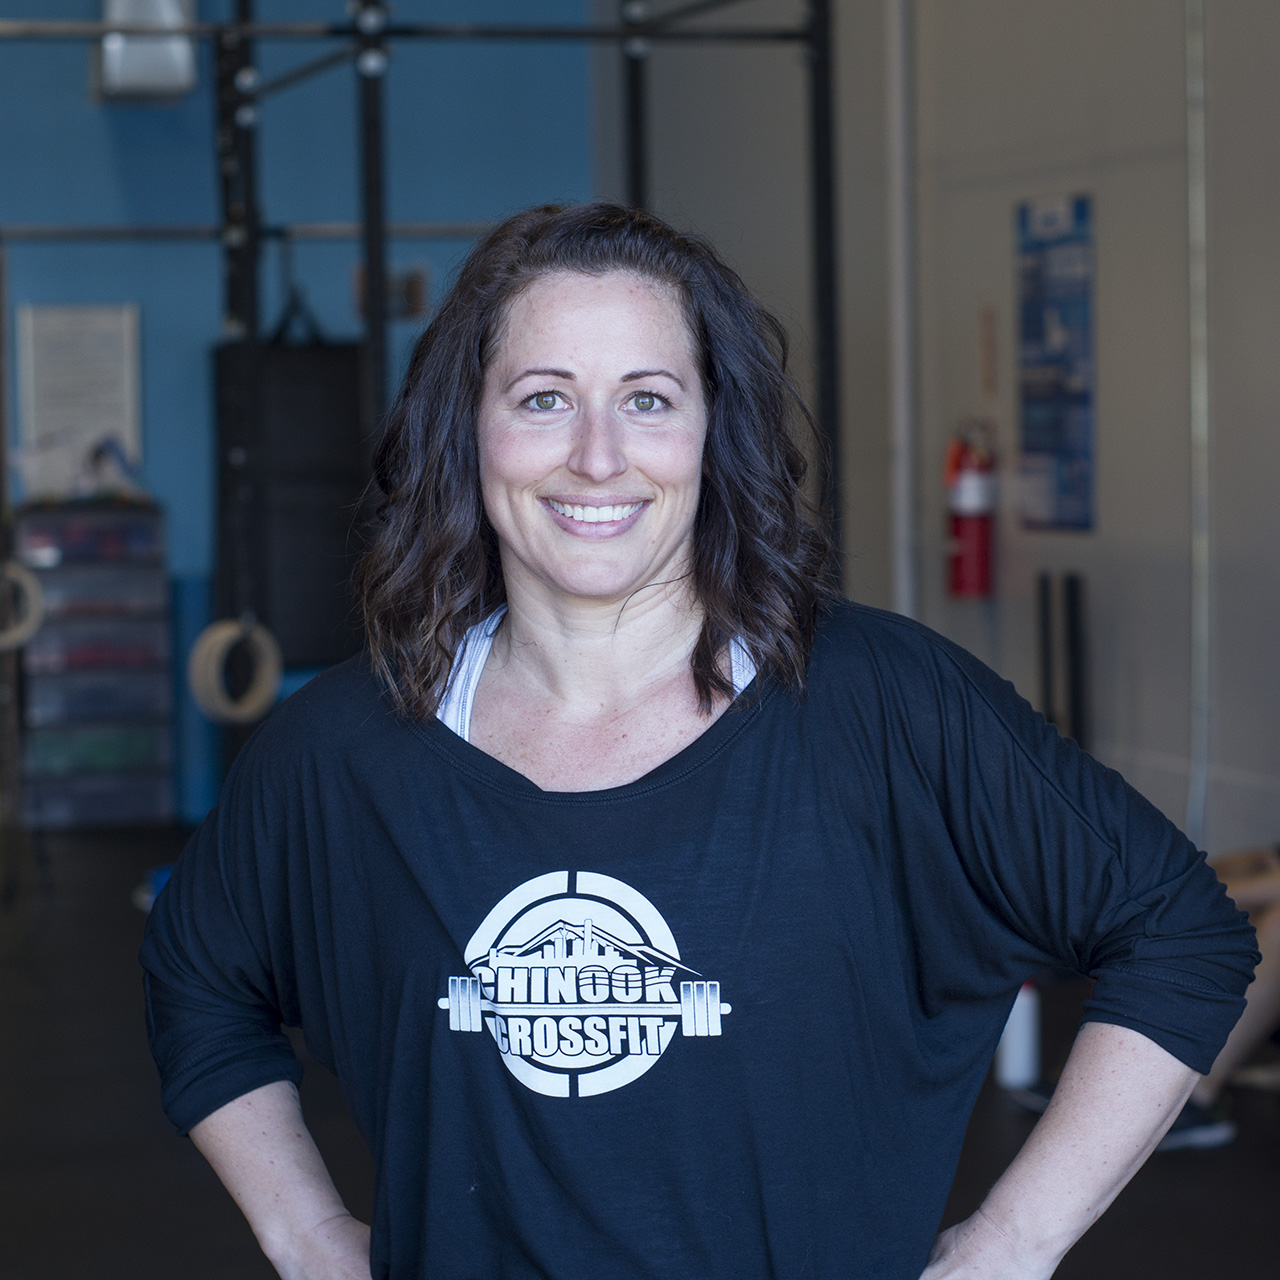 SHEREE LOGAN - COACHI have been a runner for 20 years. I wanted to get stronger overall, so I started seeing a trainer three times a week. This continued for 6 years, but eventually I got bored. After signing up for a Spartan race, I tried CrossFit to train for the race. The first workout immediately hooked me. The feeling of leaving everything on the floor is one I love. In 2 years of doing CrossFit I have seen more changes physically than I saw seeing a trainer for 6 years. I believe that it is the best overall fitness program for anyone. The sense of community at CrossFit is like nothing else and all of the members are so supportive of each other. The community is part of what helps athletes grow and stay motivated! My favorite movement to do and coach is back squat. Most people can back squat a good weight and that is very motivating for them!CrossFit Level 1 TrainerCrossFit Mobility CertificateCrossFit Gymnastics Certificate